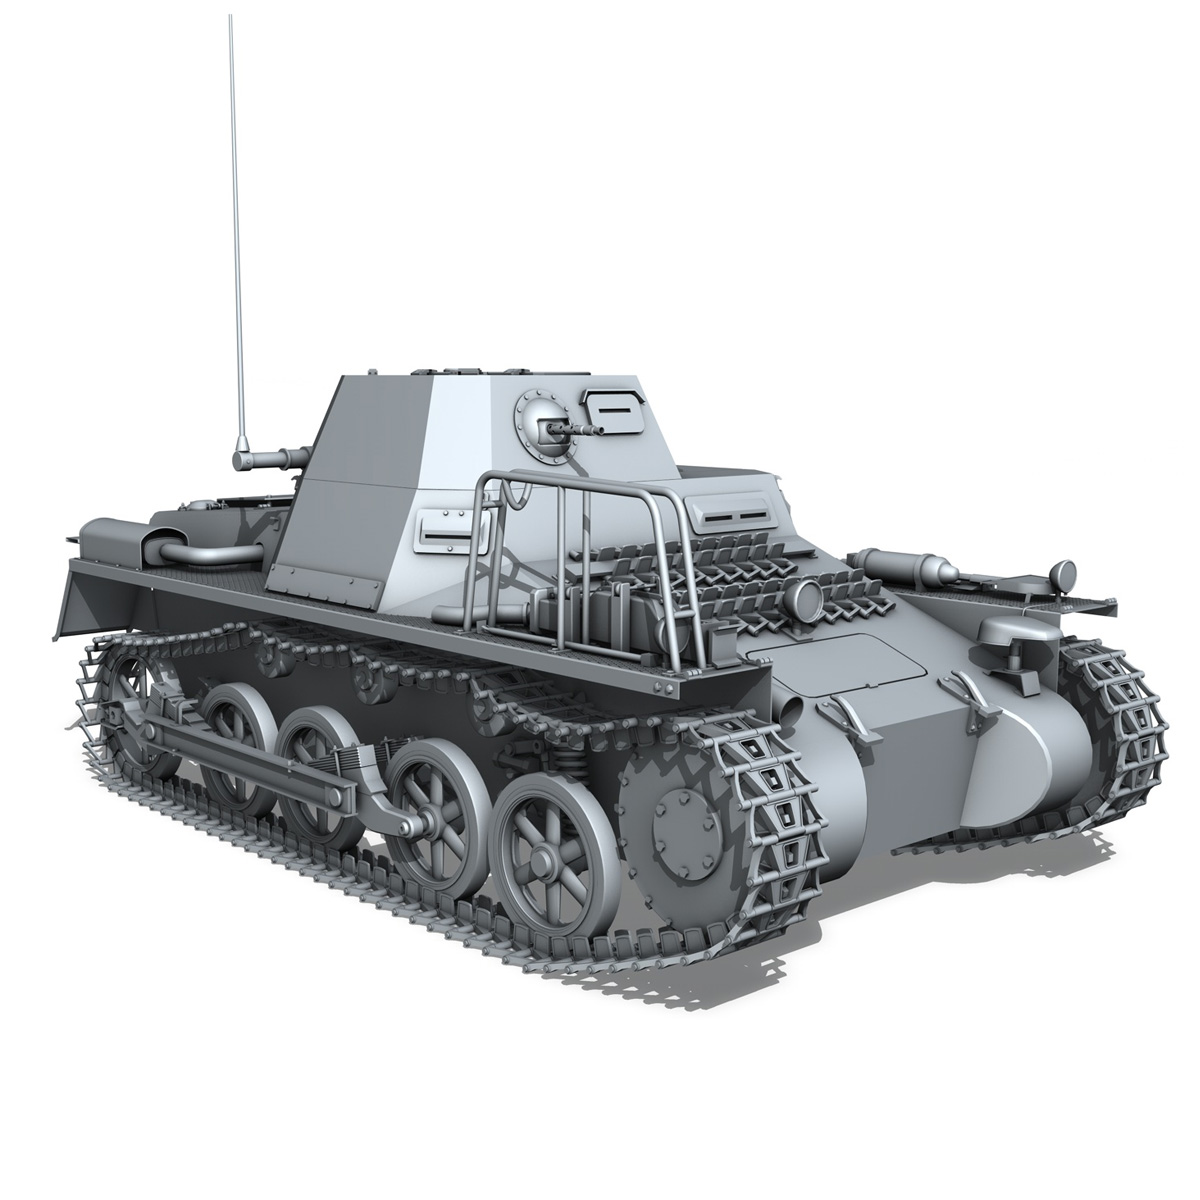 panzerkampfwagen 1 – panzer 1 collection 3d model 3ds fbx c4d lwo obj 189342